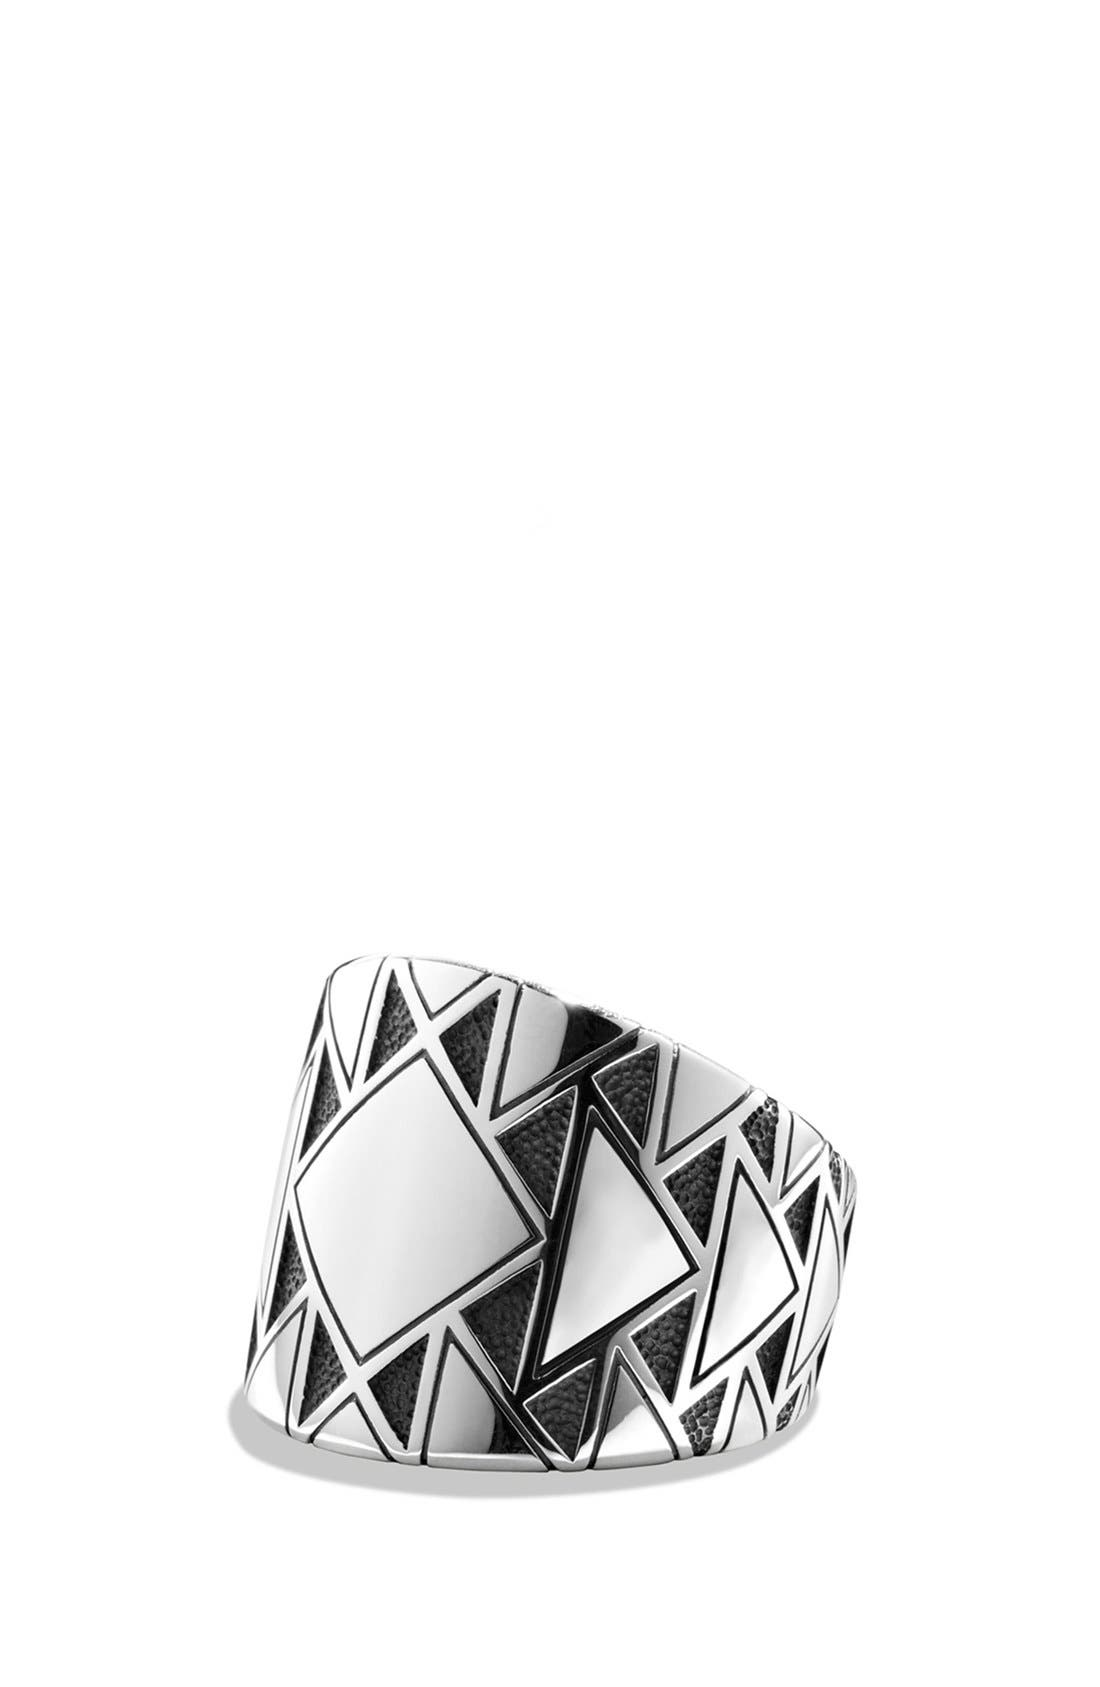 Southwest Signet Ring with Black Diamonds,                         Main,                         color, Silver